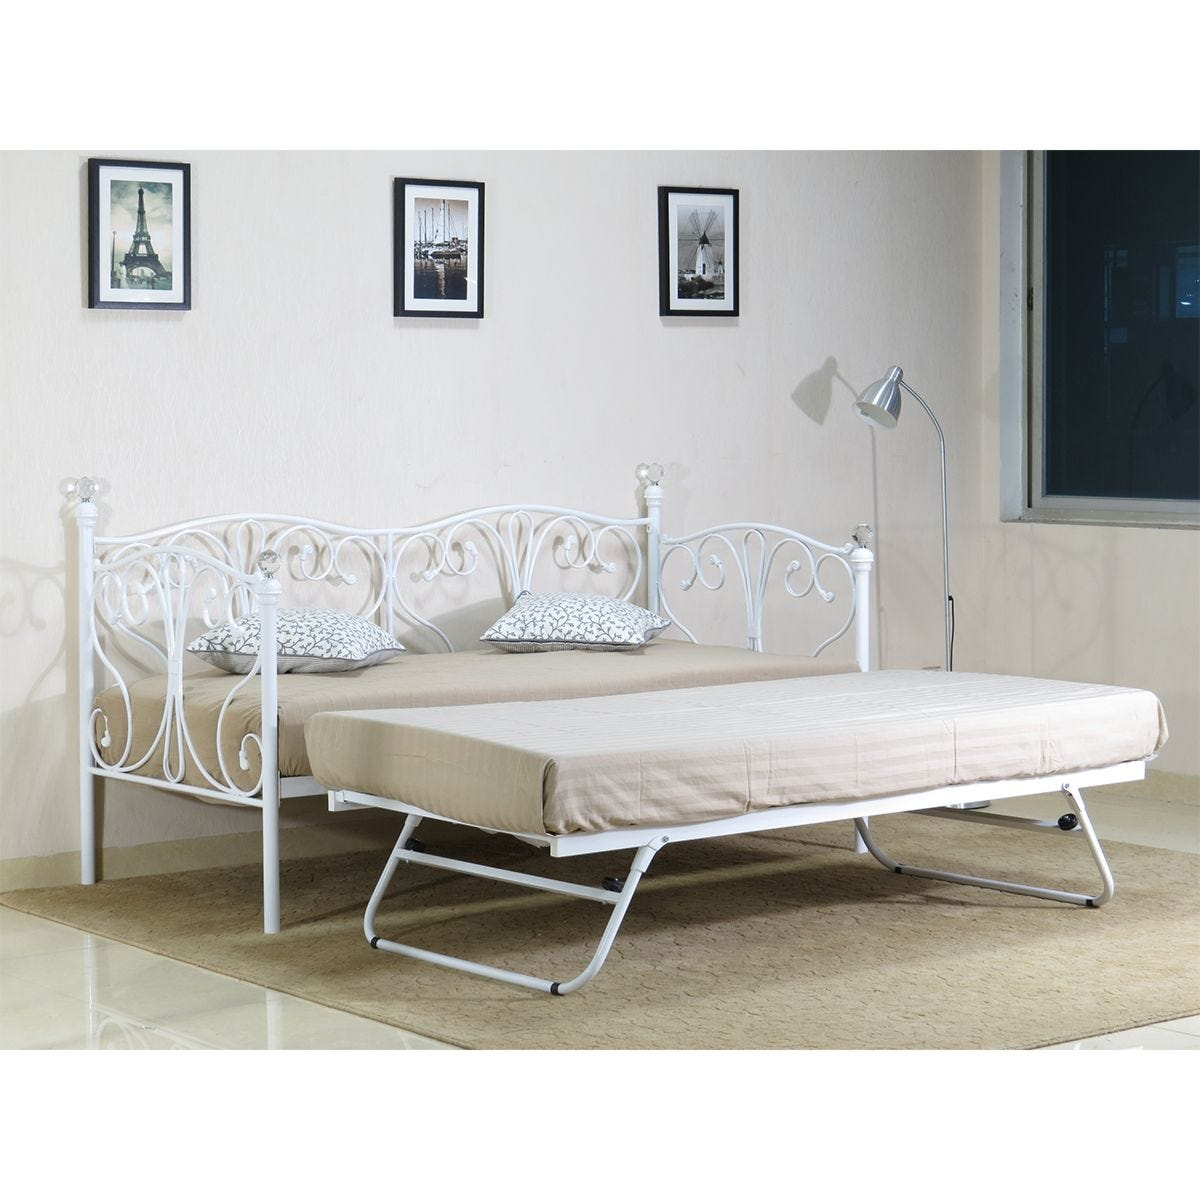 Geovana Day Bed With Trundle - White